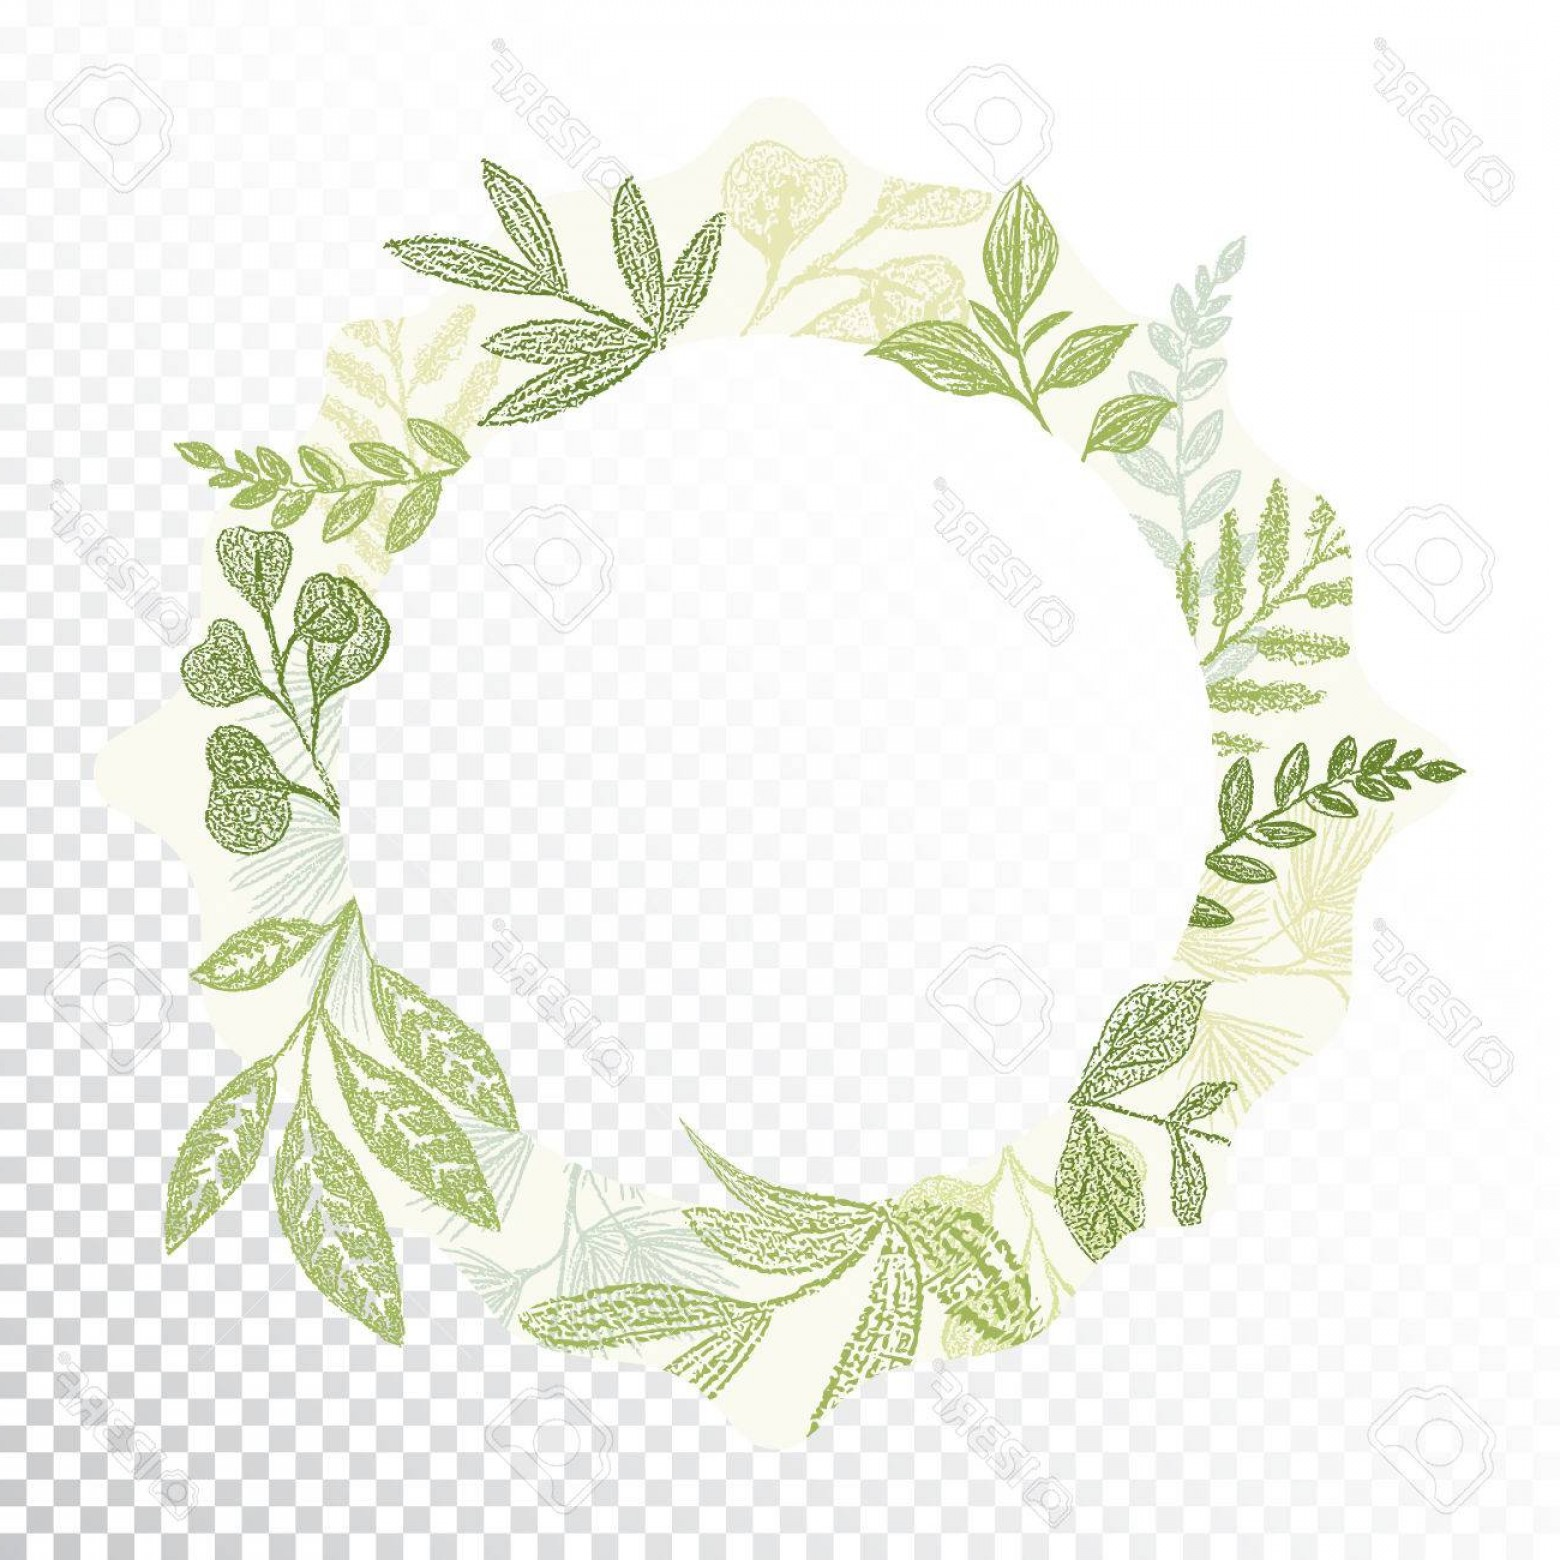 Green Oval Border Vector: Photostock Vector Hand Drawn Circle Flaral Frame Vector Green Branches And Leaves Border Decoration Round Greenery Car